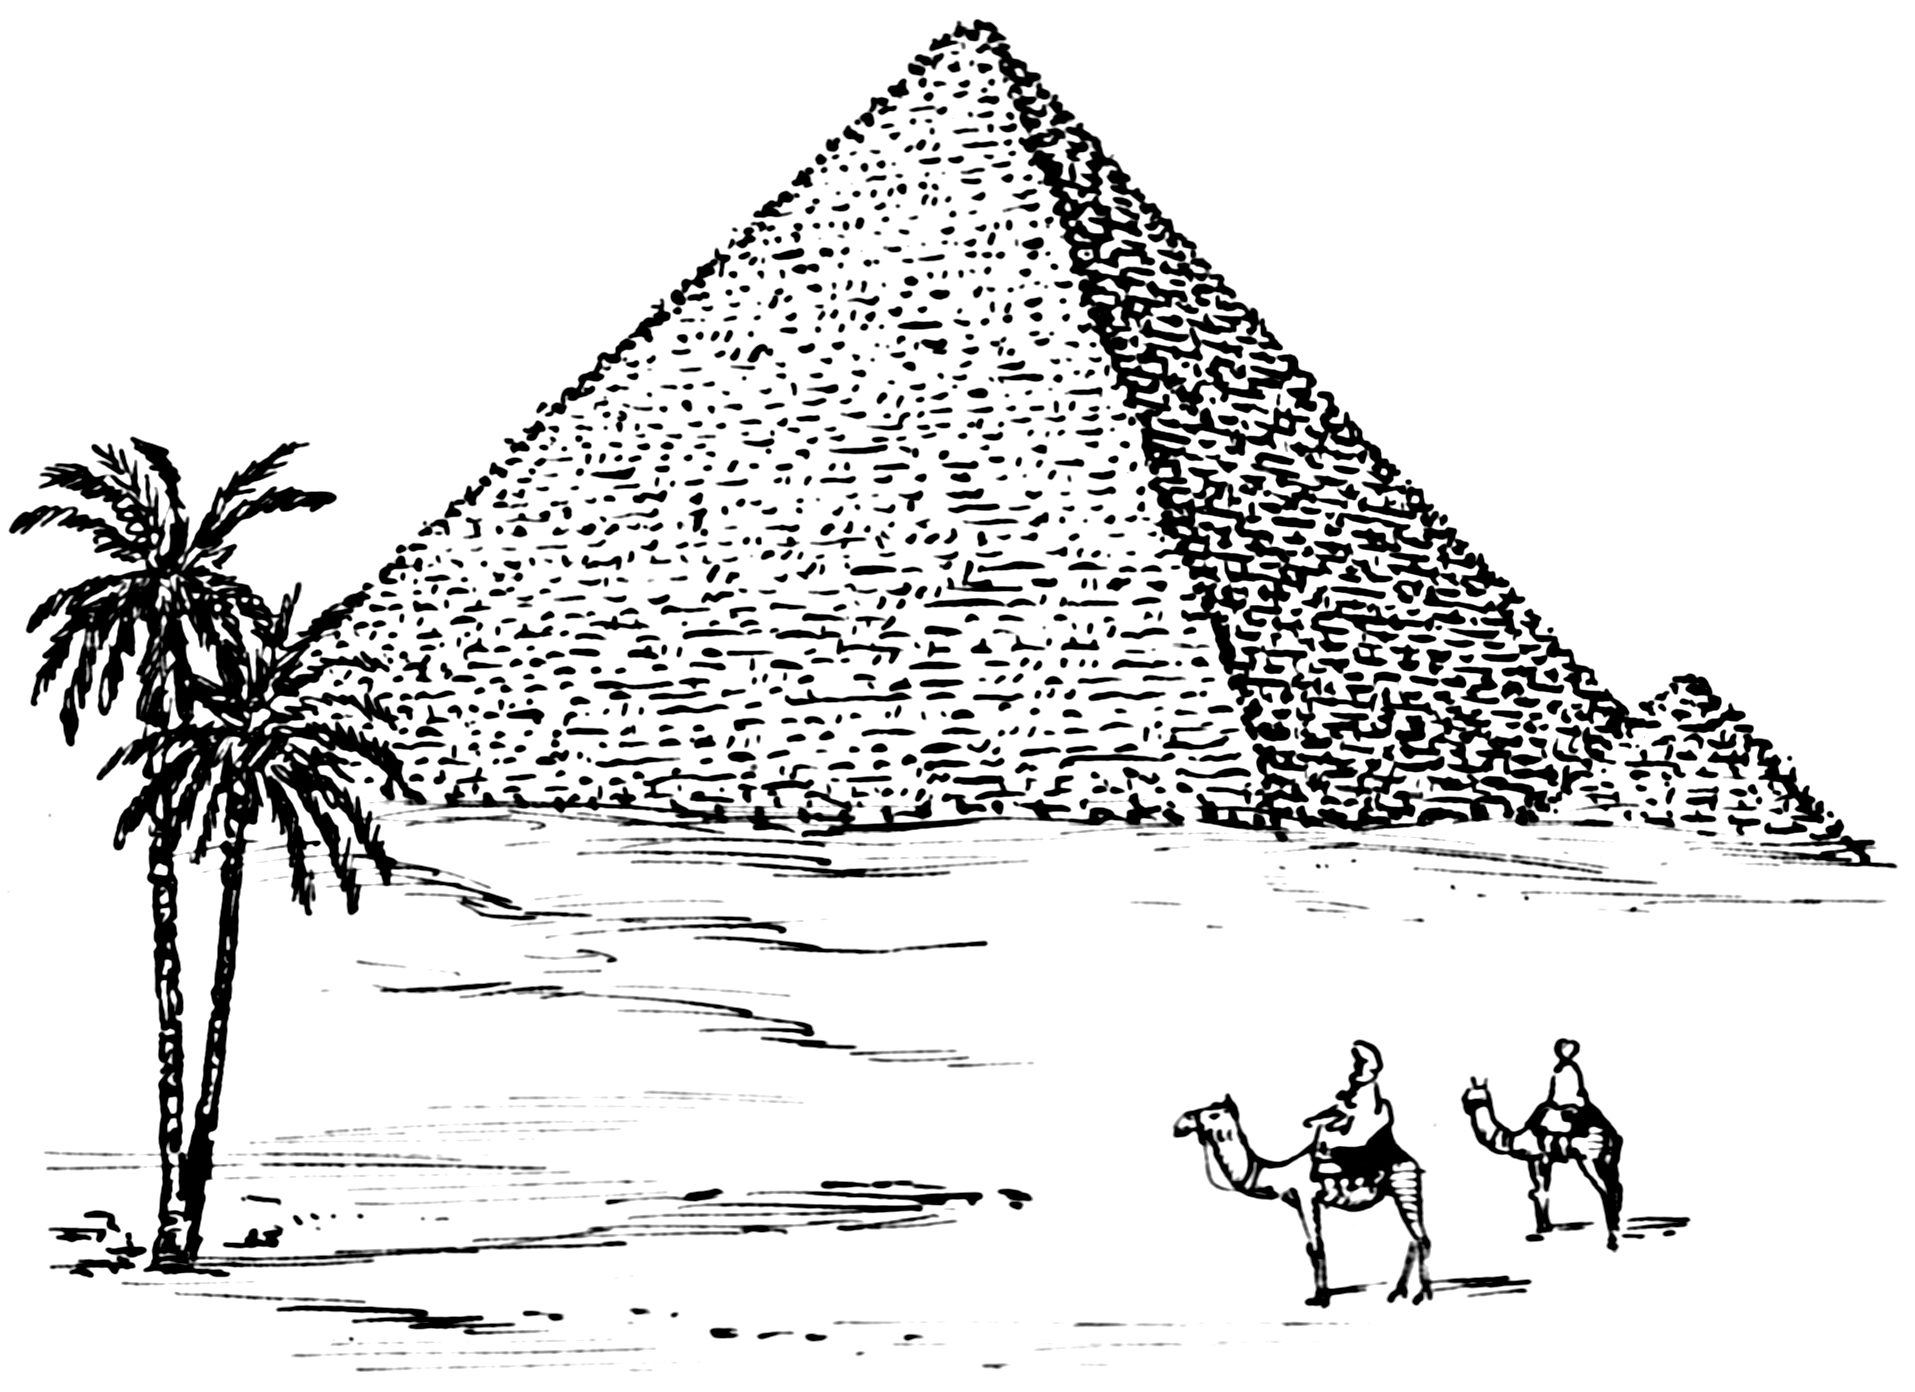 Drawn pyramid egyptian pyramid Commons (PSF) (PSF) File:Pyramid png